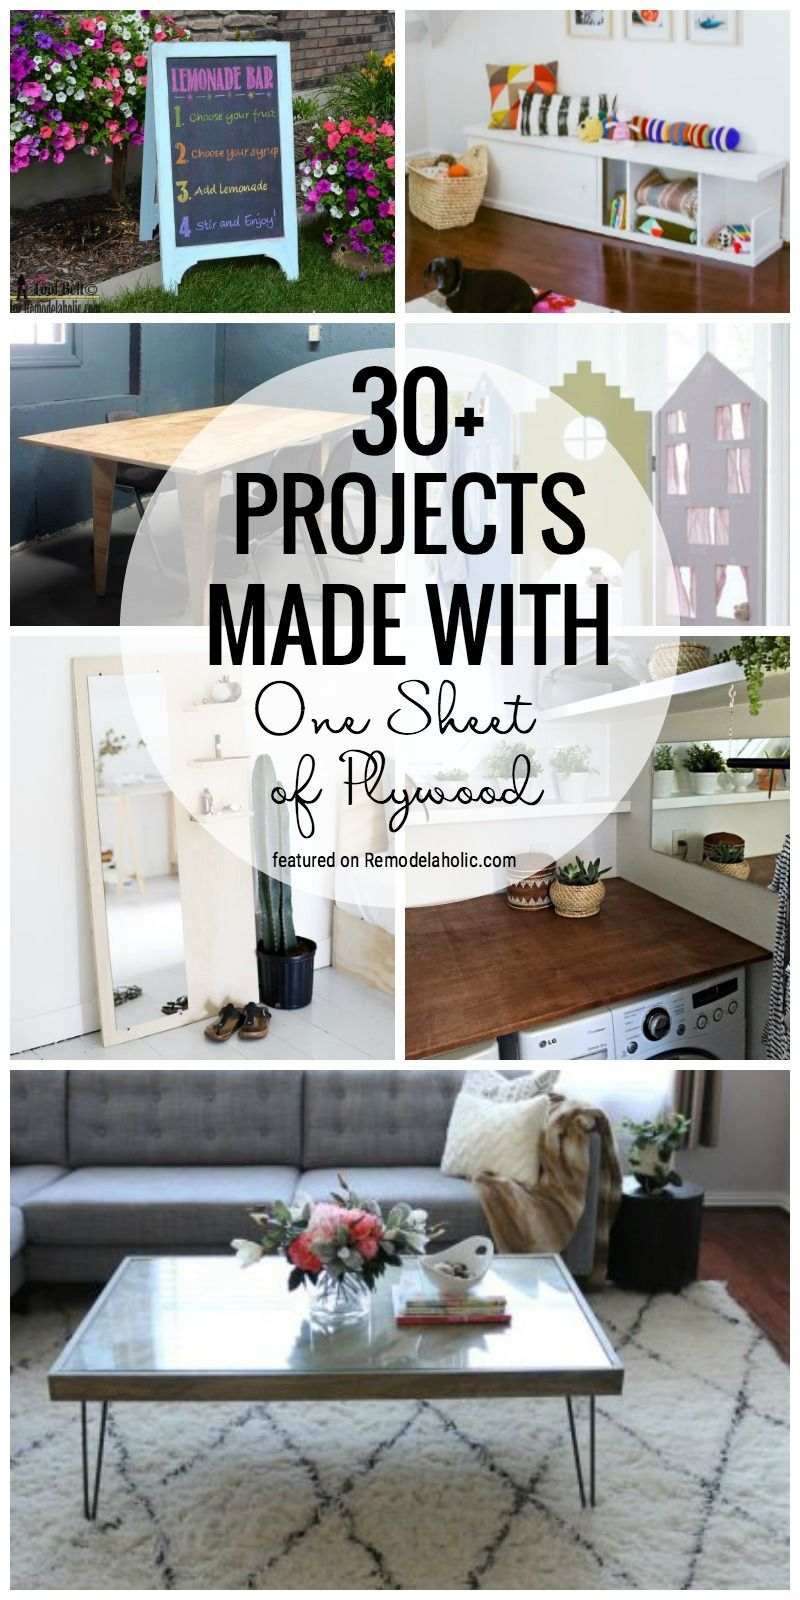 Grab A Sheet Of Plywood To Make One Of These Fabulous Projects 30 Projects Made With One Shee Easy Woodworking Projects Plywood Projects Wood Pallet Projects